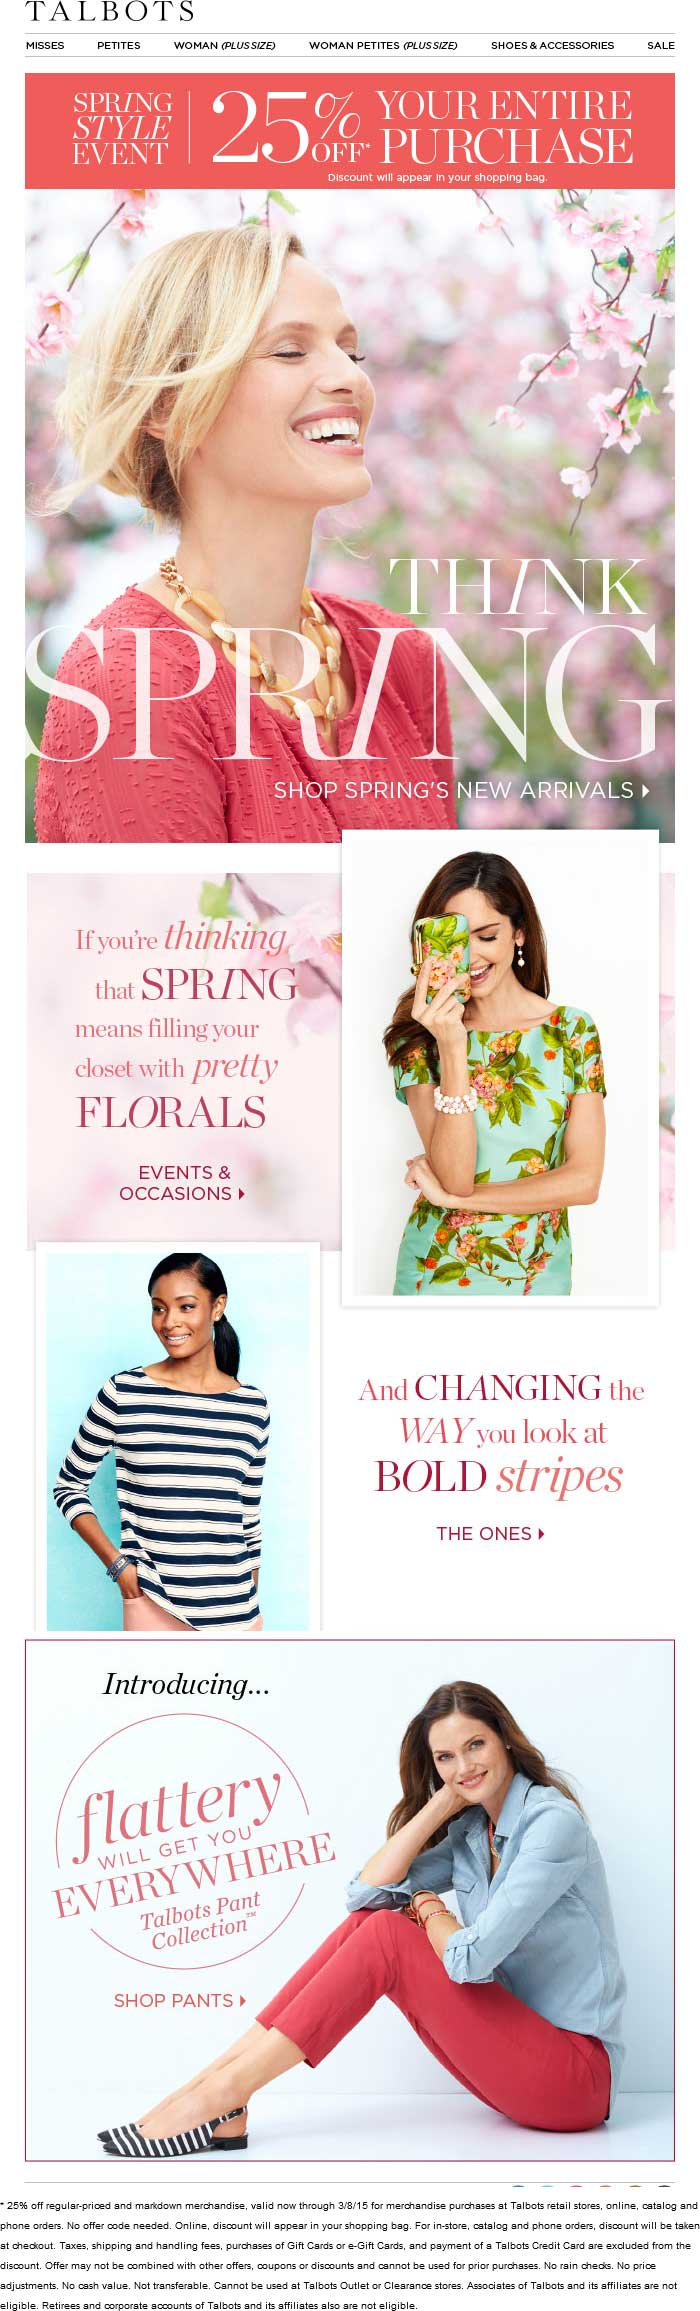 Talbots Coupon September 2017 Extra 25% off at Talbots, ditto online